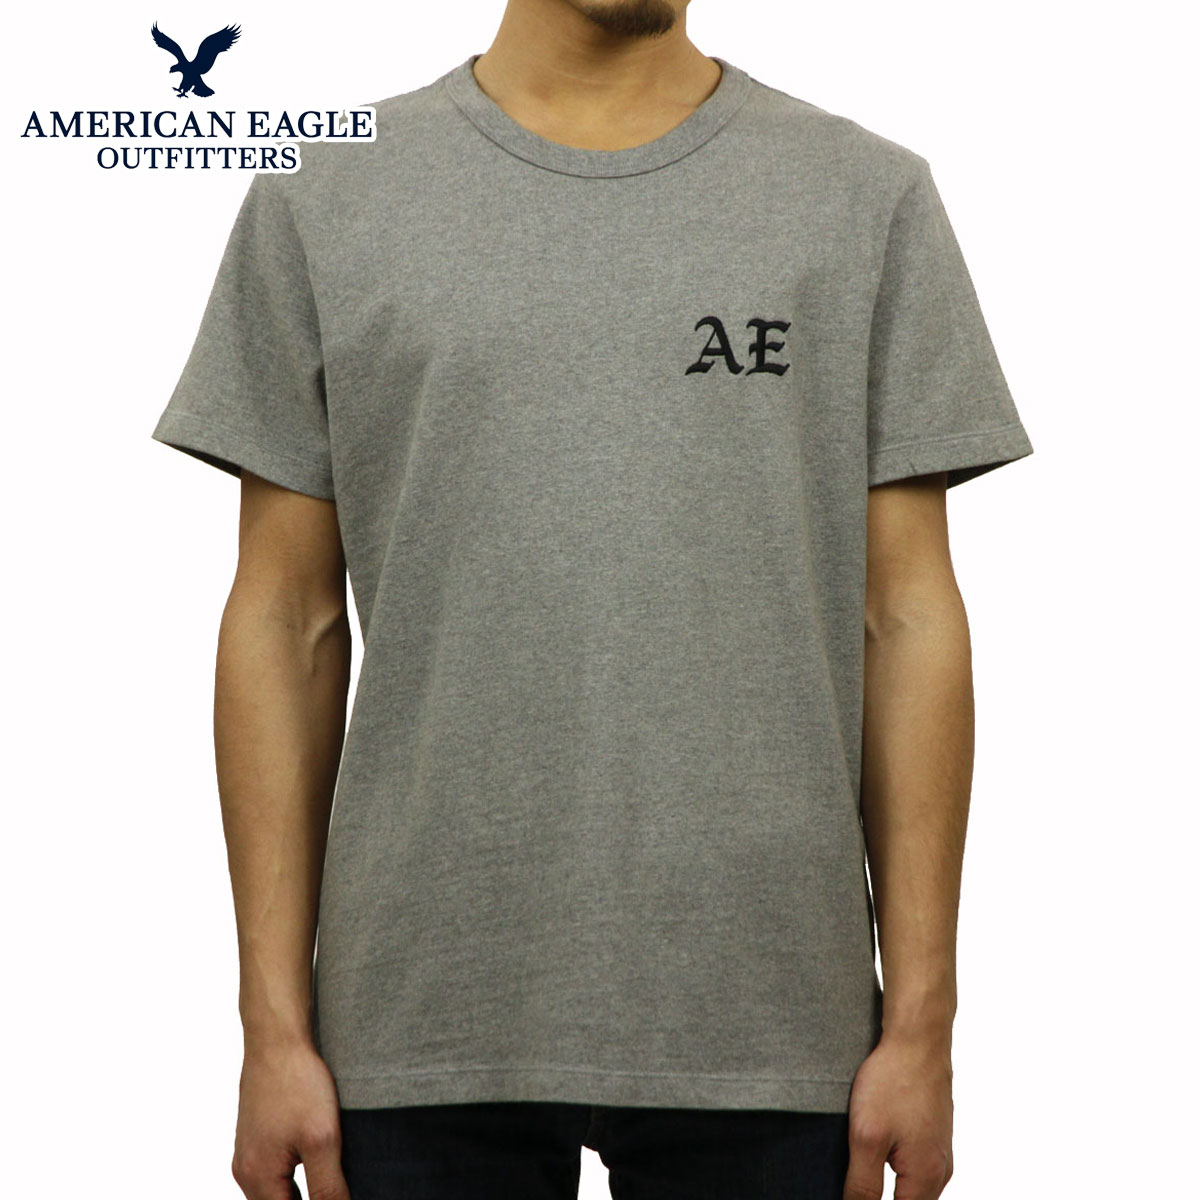 540c9fb2c American eagle AMERICAN EAGLE regular article men crew neck short sleeves T-shirt  AE EMBROIDERED ...